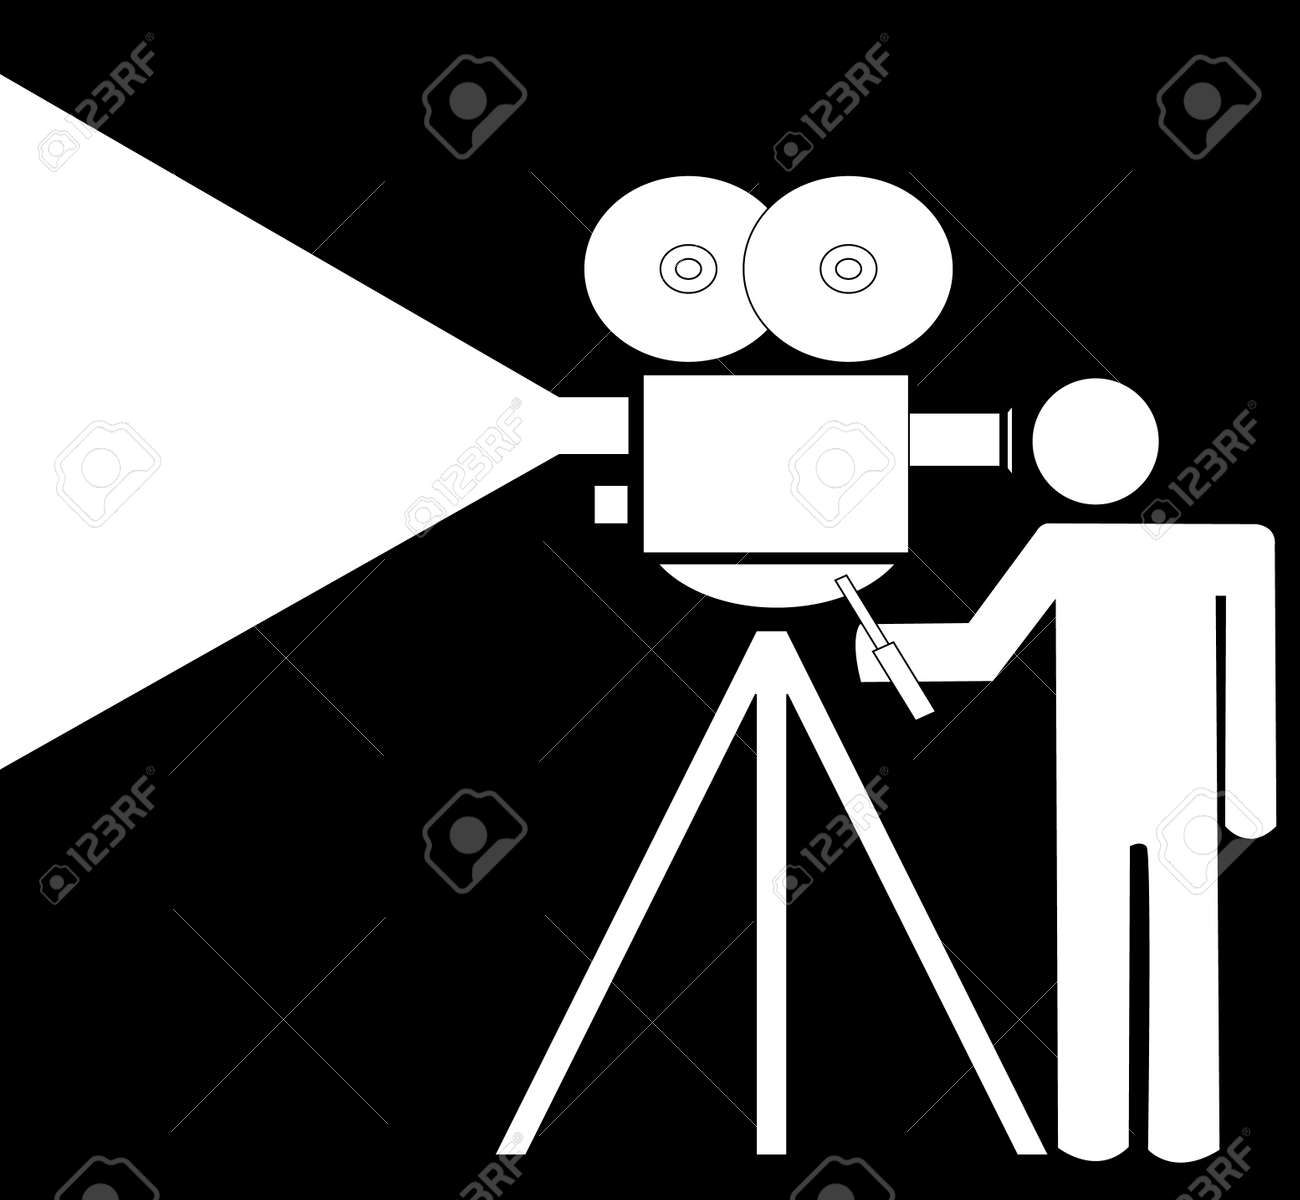 stick man or figure filming with a movie camera - vector Stock Vector - 3103684